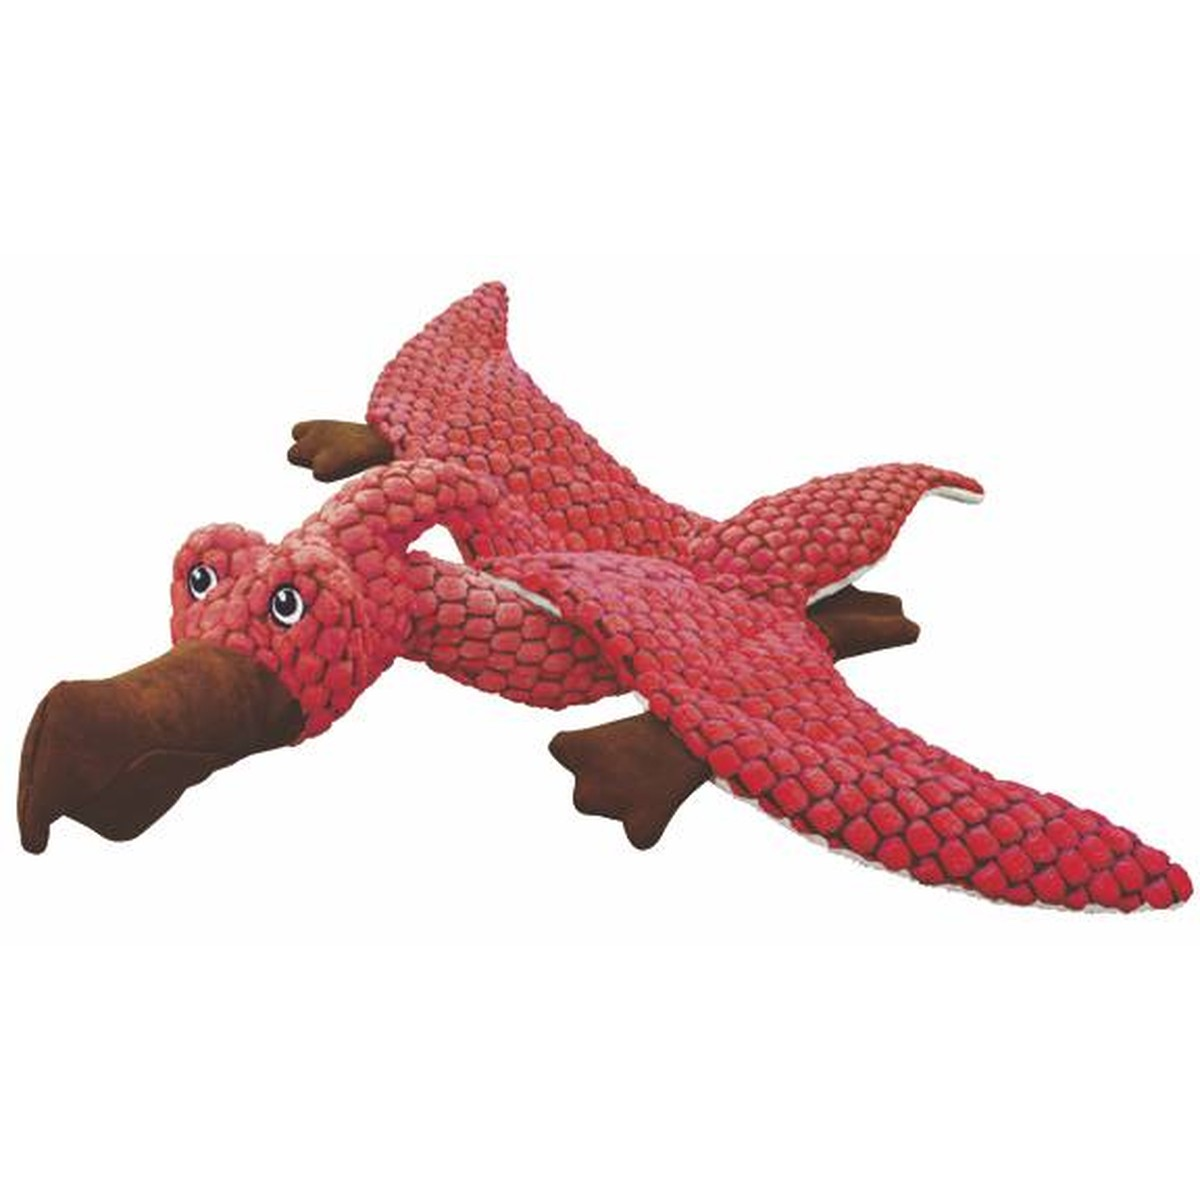 Kong Dynos Pterodactyl, rouge coraille 27 cm  27 cm